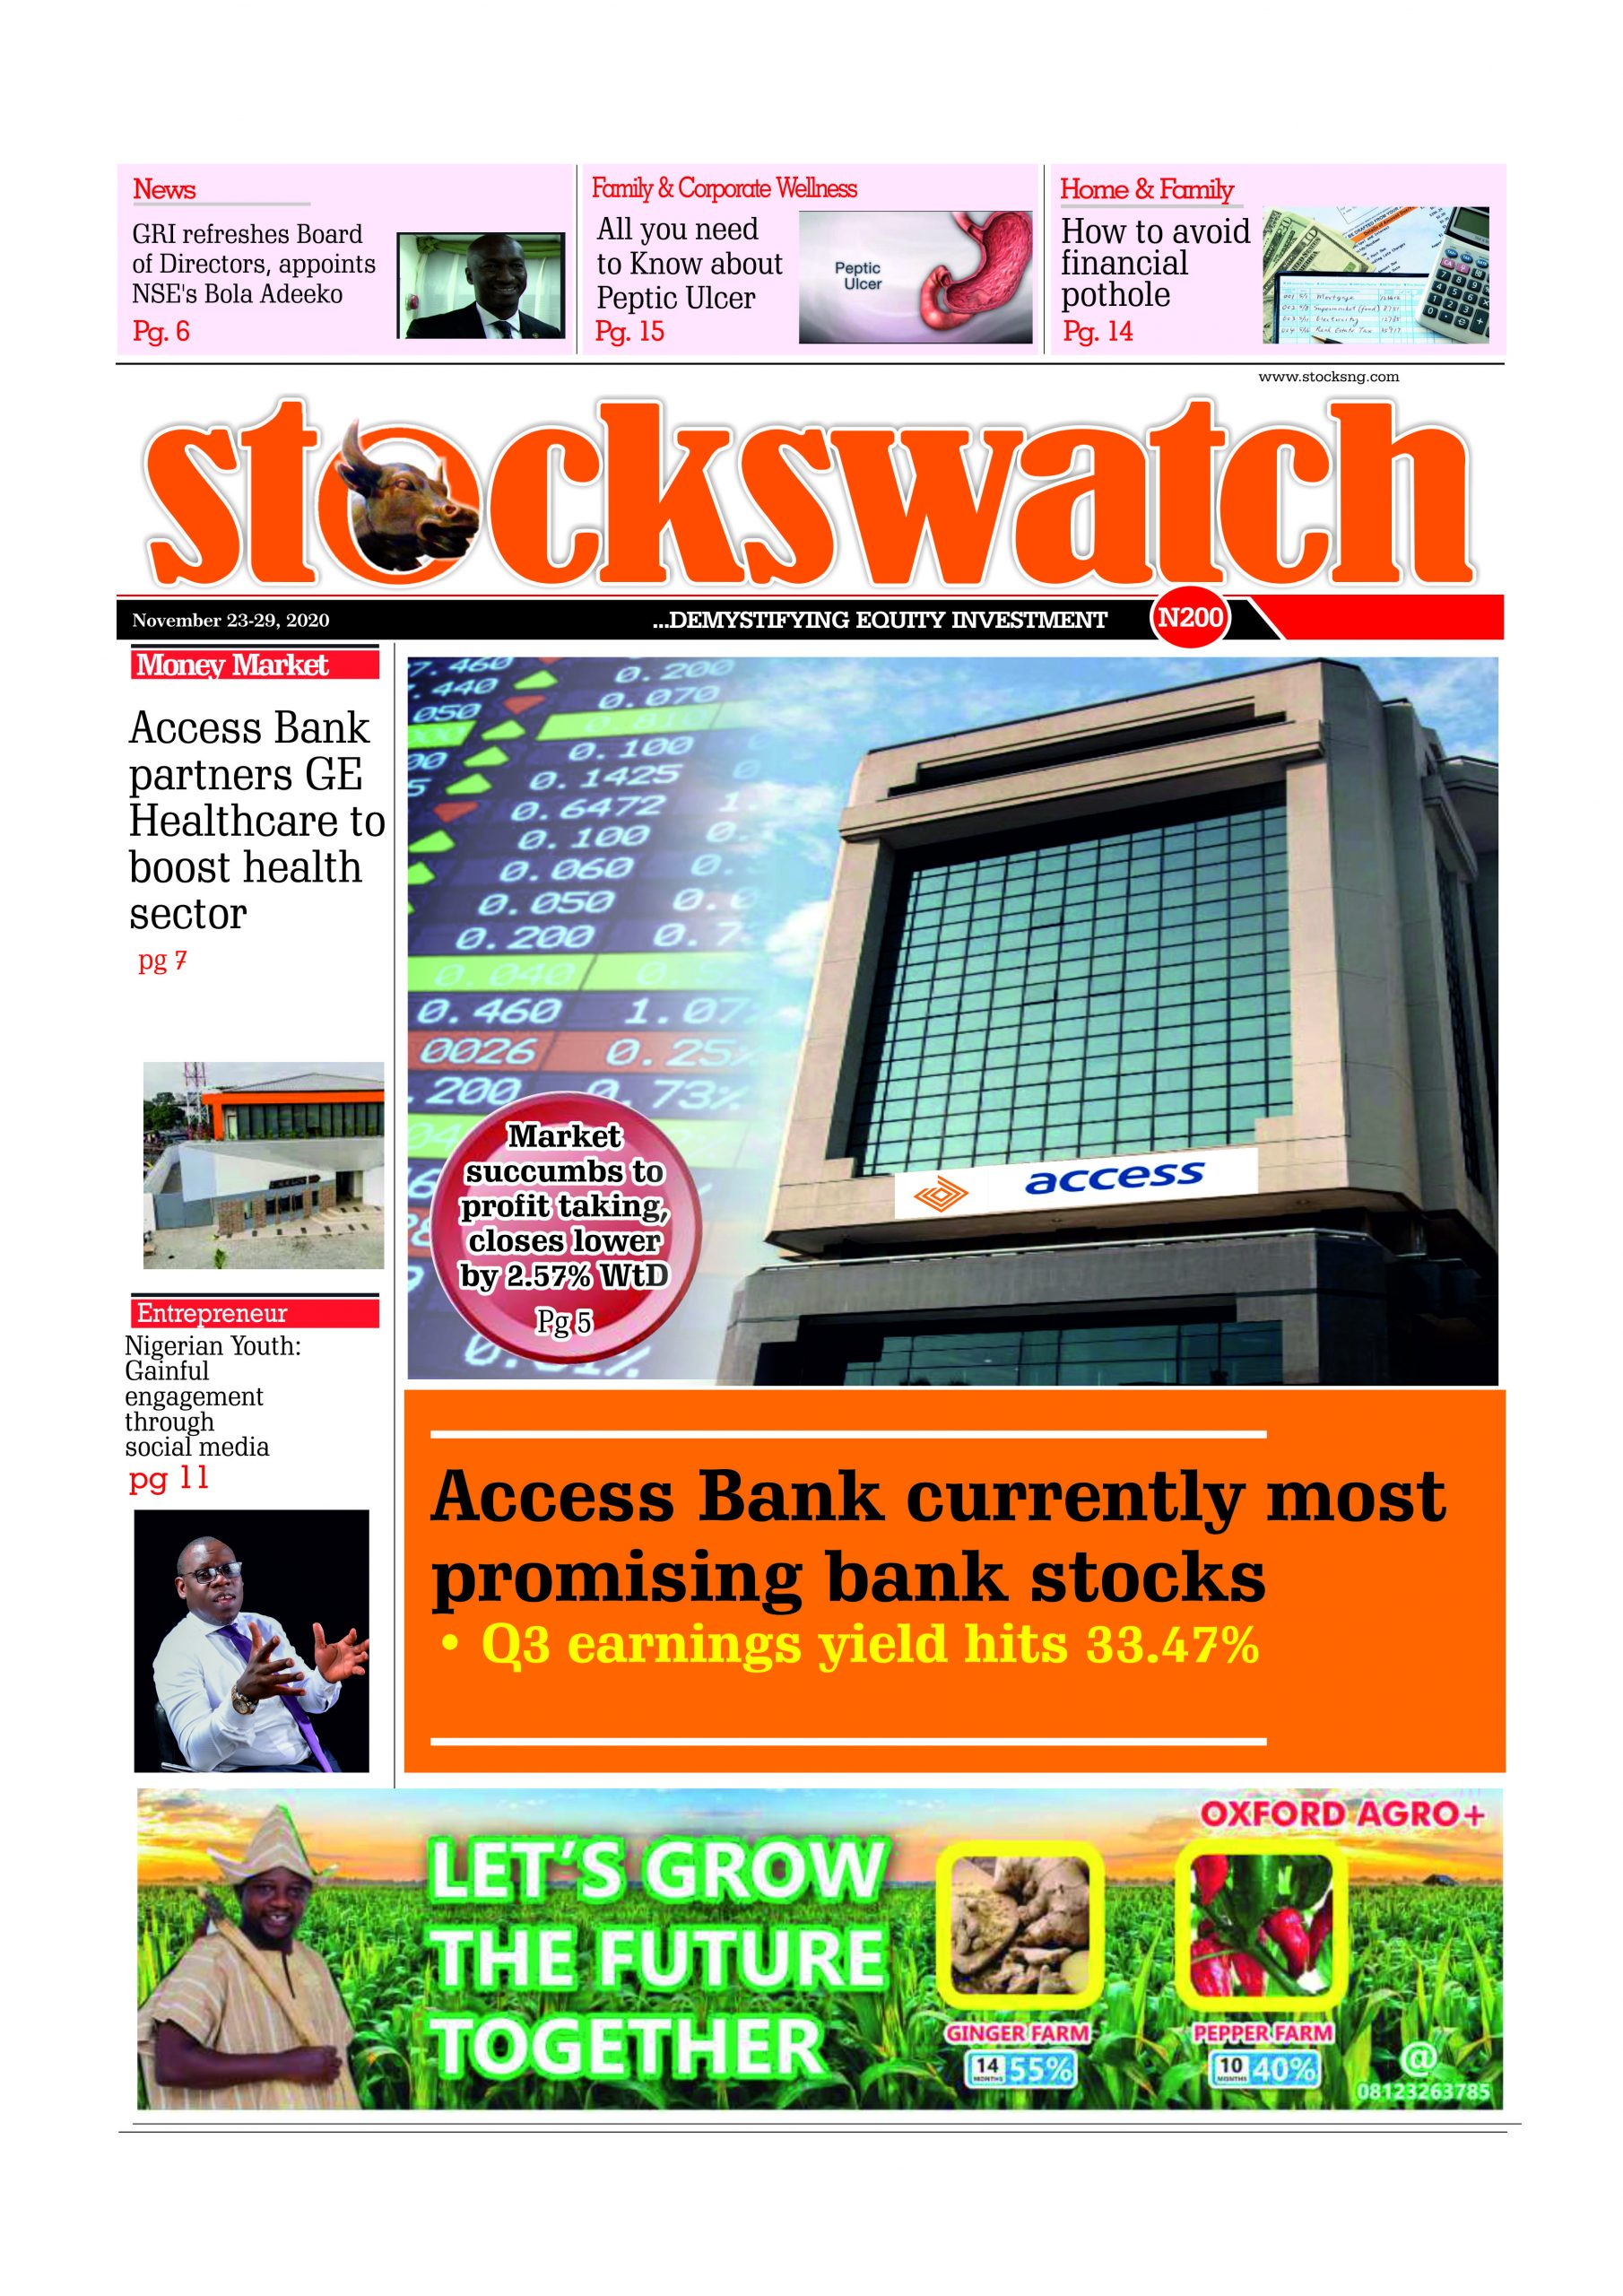 Stockswatch, November 23-29, 2020